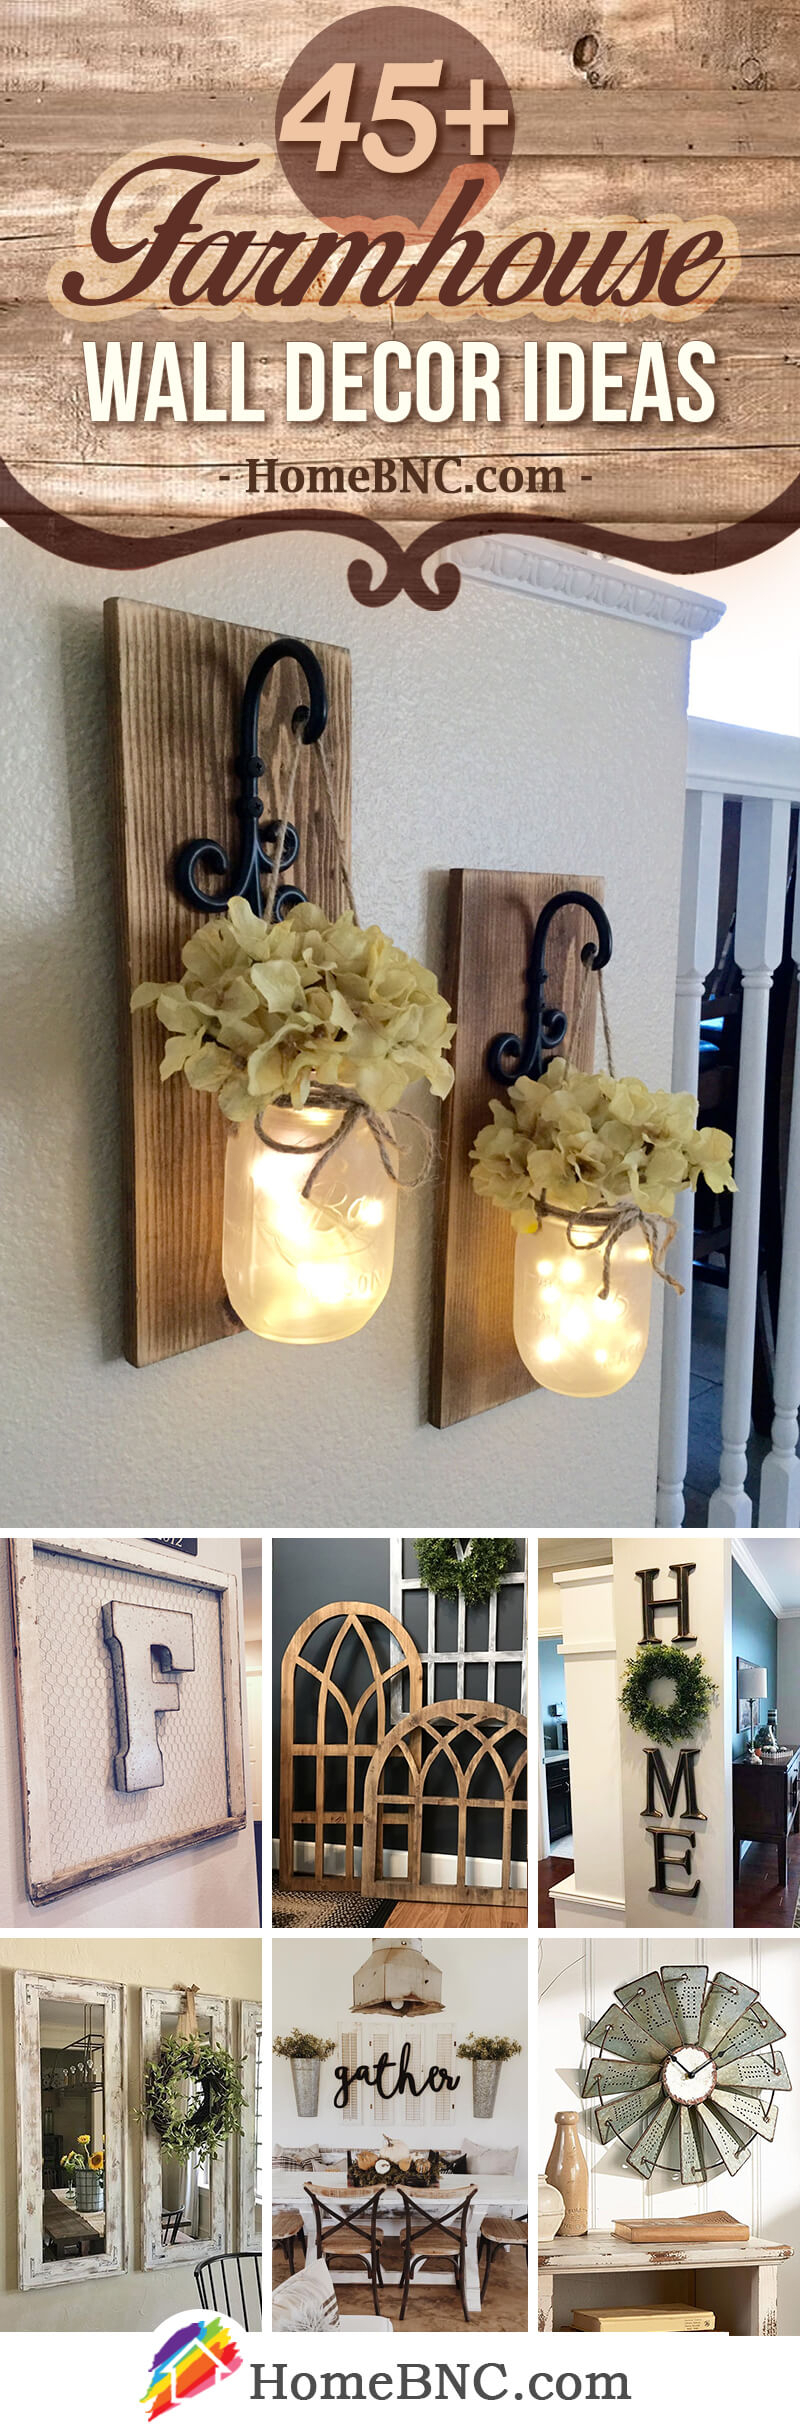 45+ Best Farmhouse Wall Decor Ideas And Designs For 2019 inside Choose Happy Wood Wall Decor (Image 3 of 30)